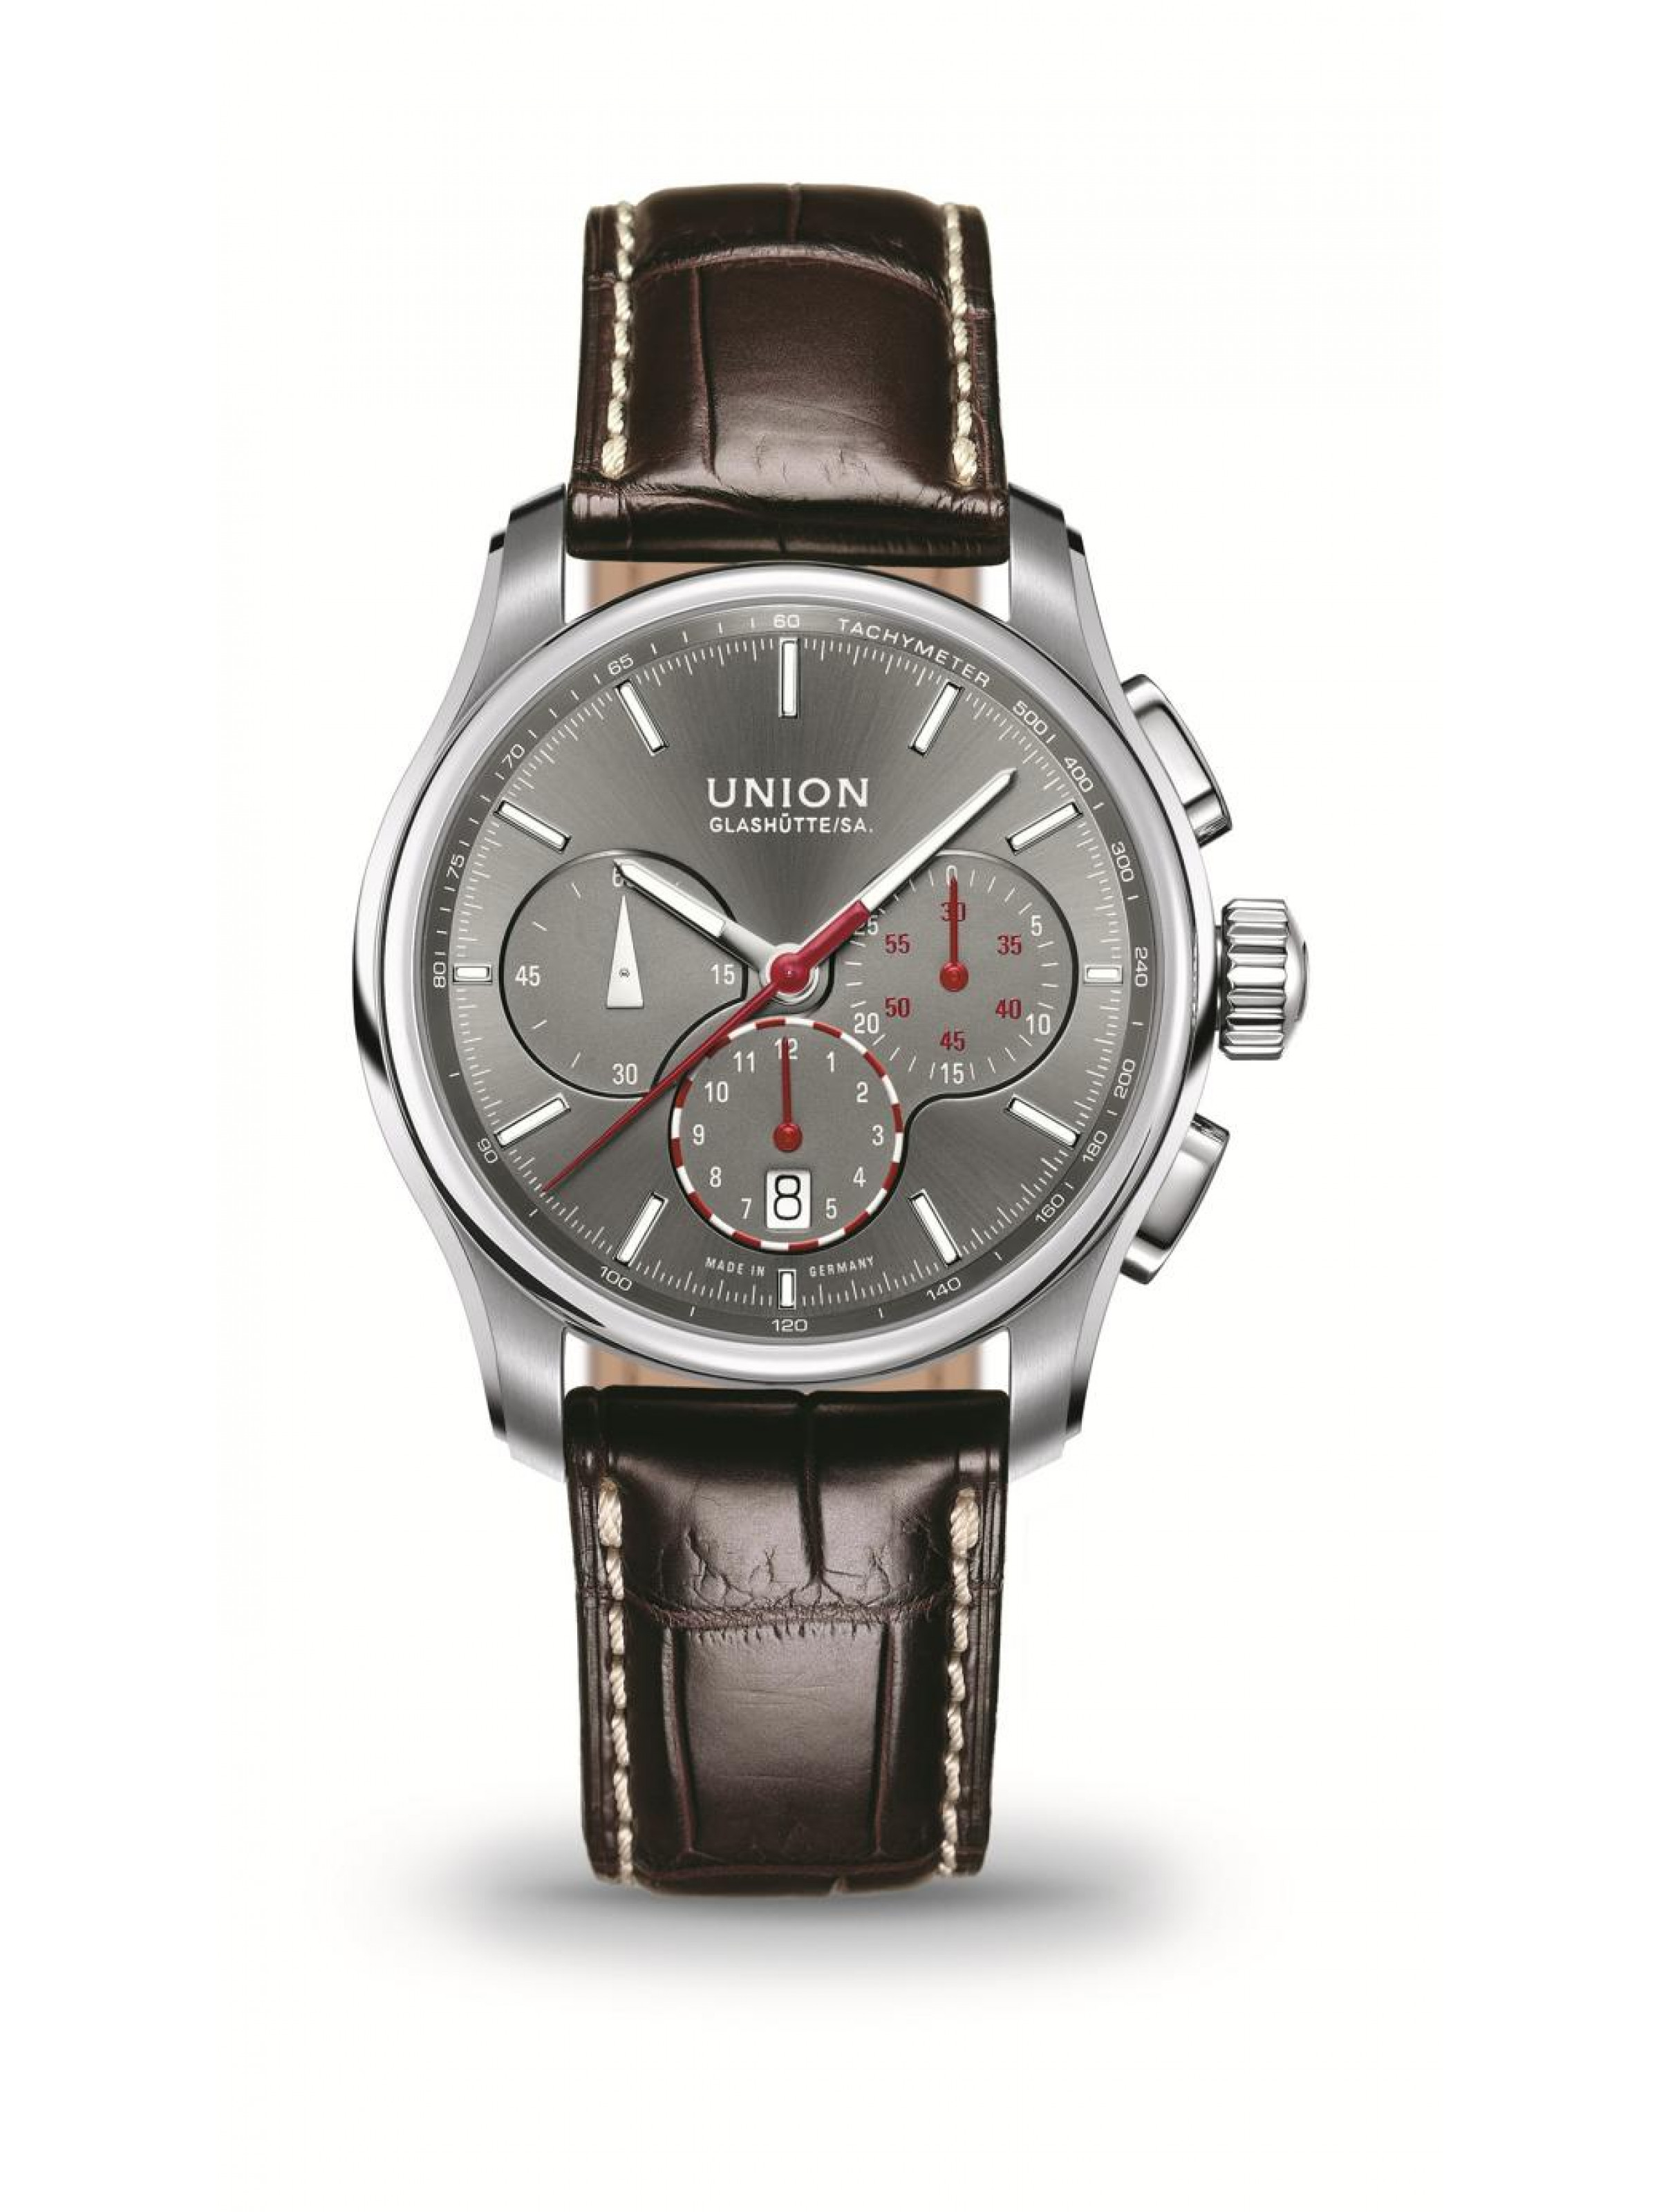 Union Glashütte Belisar Chronograph D002.427.16.081.00 Watch